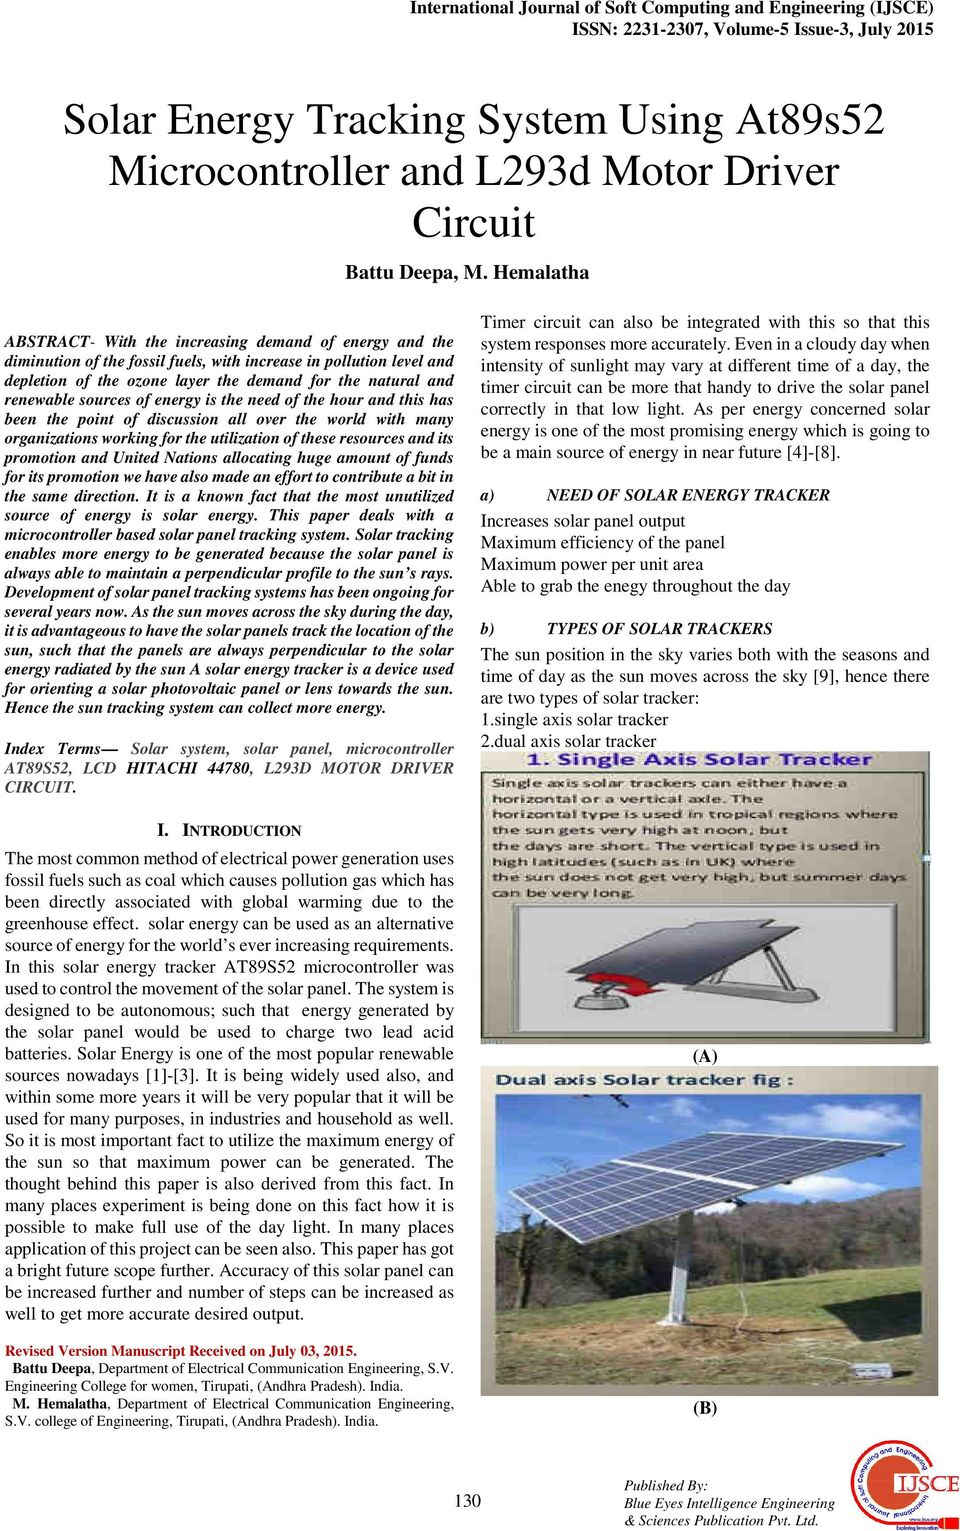 Solar Energy Tracking System Using At89s52 Microcontroller And L293d Circuit Hemalatha Abstract With The Increasing Demand Of Diminution Fossil Fuels